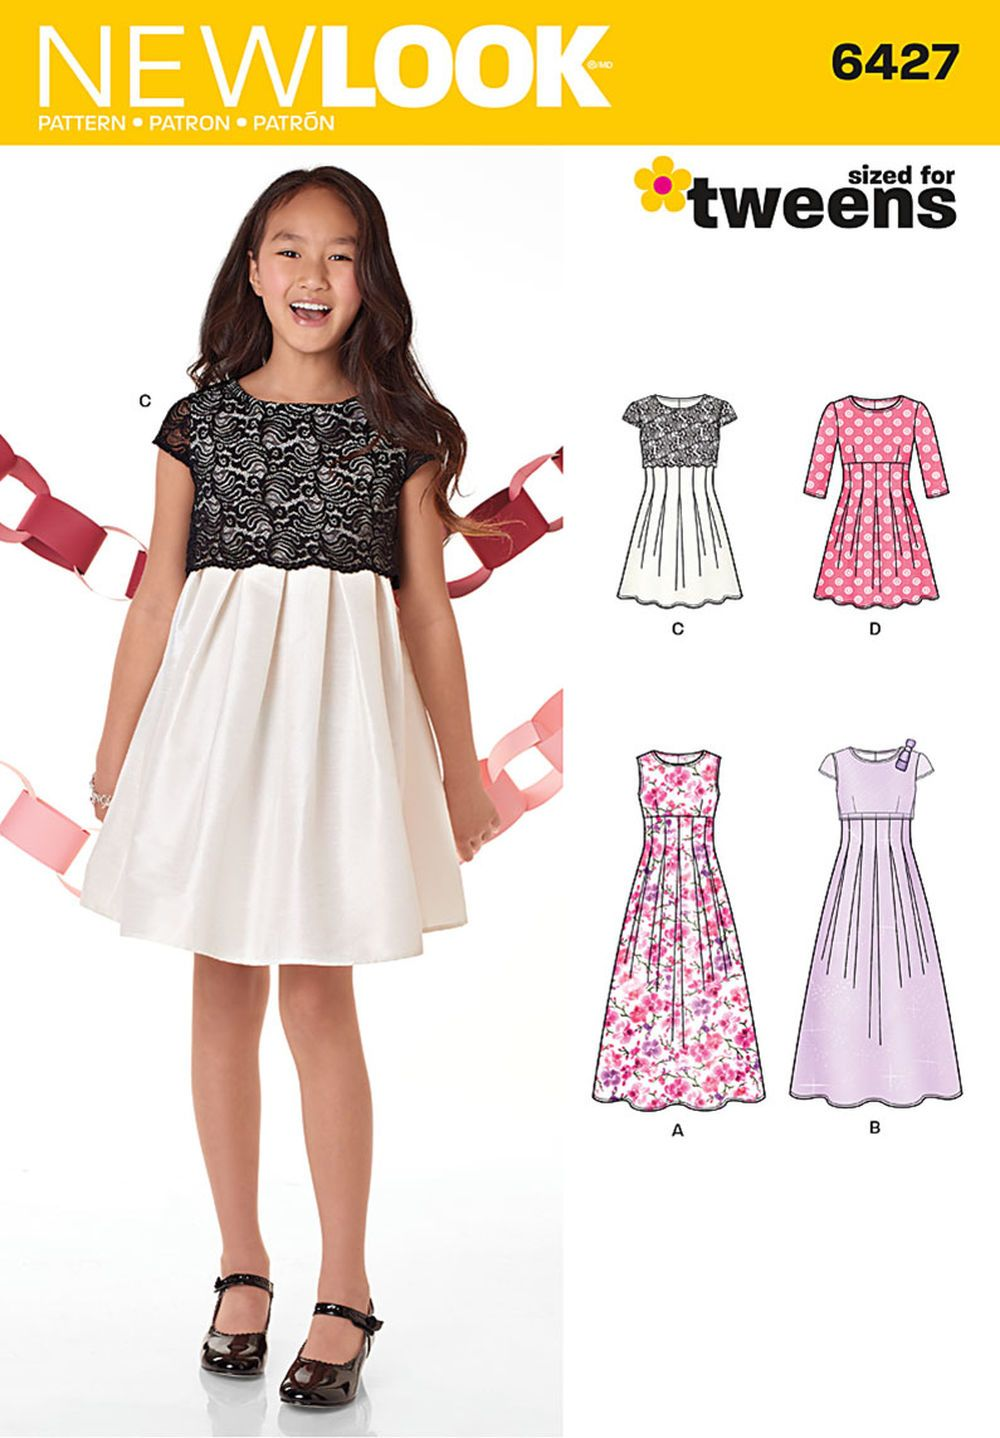 Special event or everyday dress pattern for girls features special event or everyday dress pattern for girls features sleeveless maxi dress with optional bodice overlay that has cap sleeves and bow detail jeuxipadfo Images